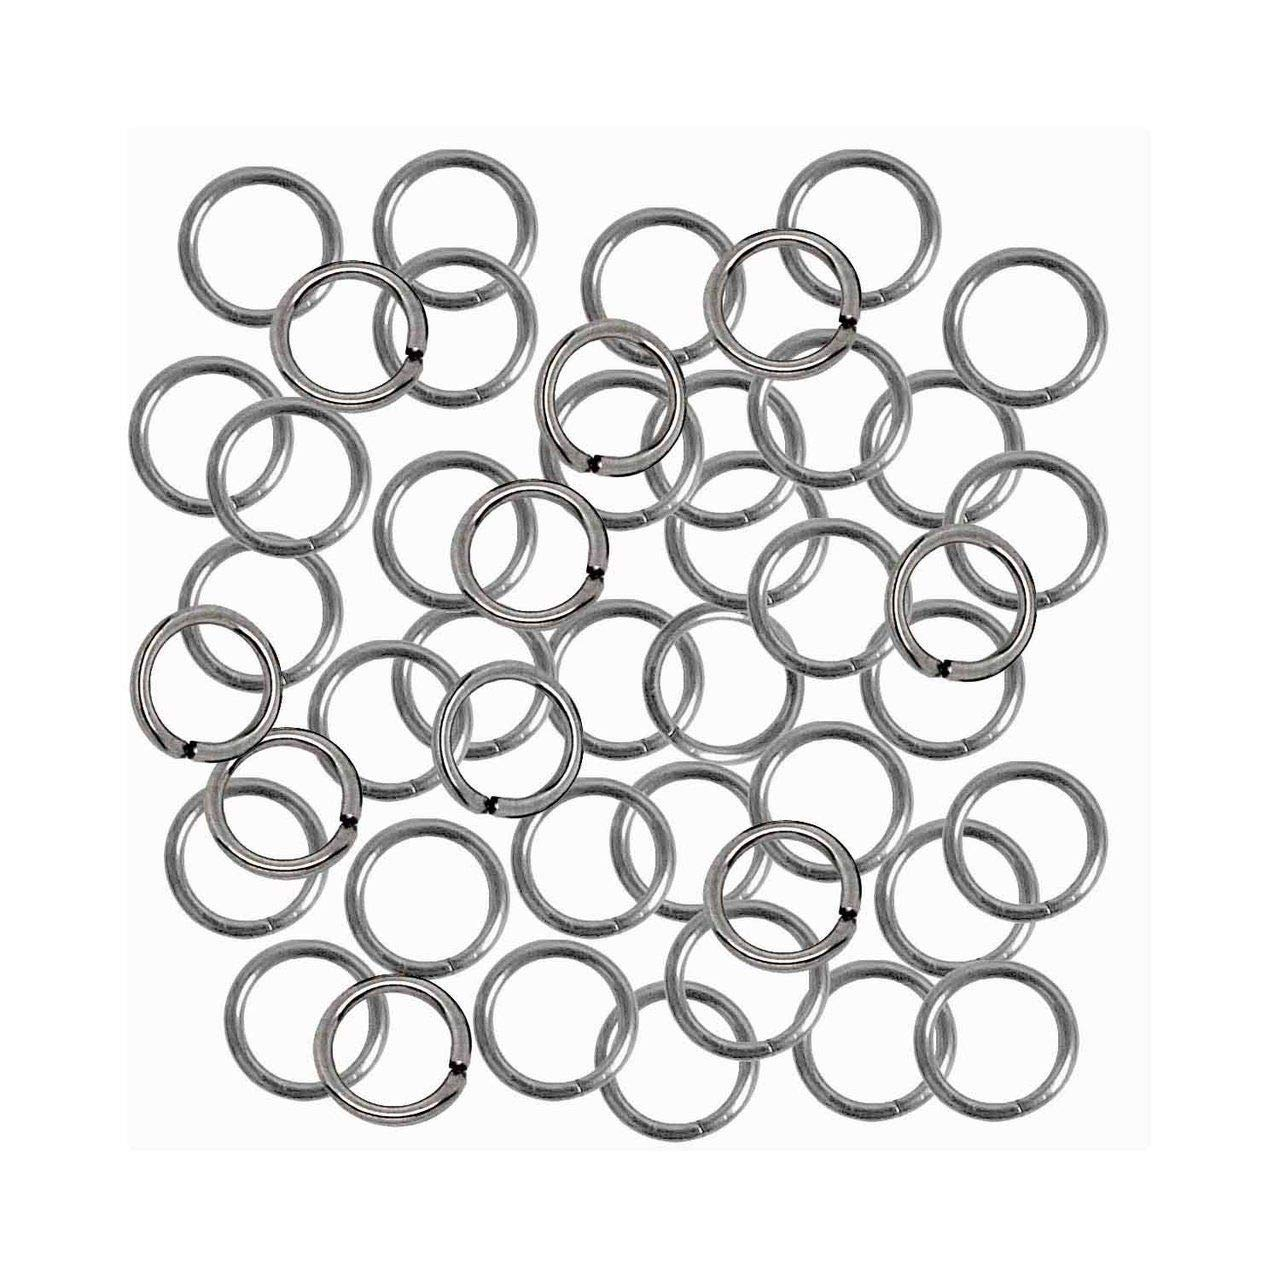 7mm 8mm 9mm 304 Jewelry Grade Stainless Steel Jump Rings Chain Links U-Pick 17 Guage 6mm Od